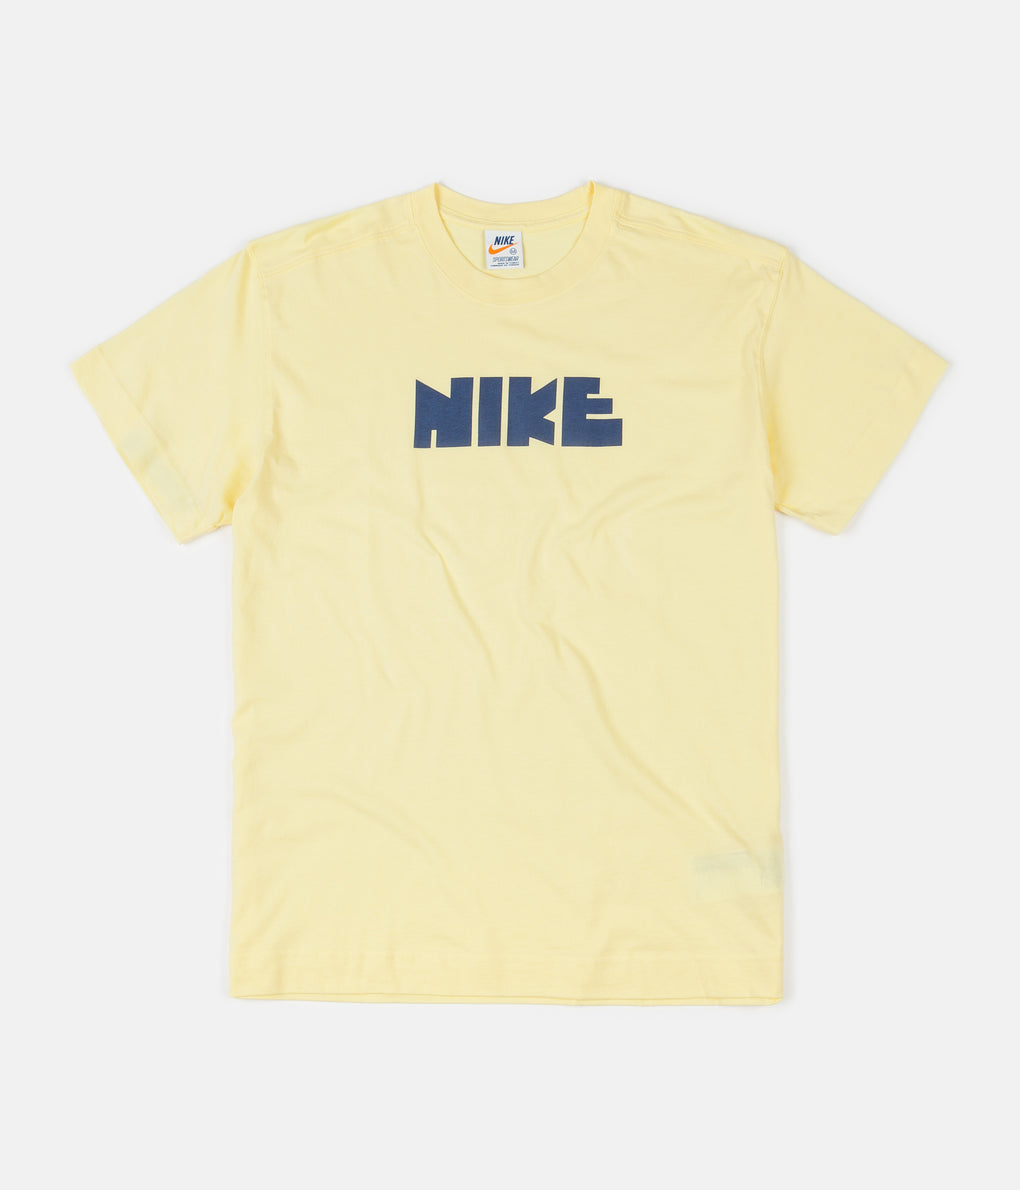 Nike Classic 3 T-Shirt - Bicycle Yellow / Midnight Navy